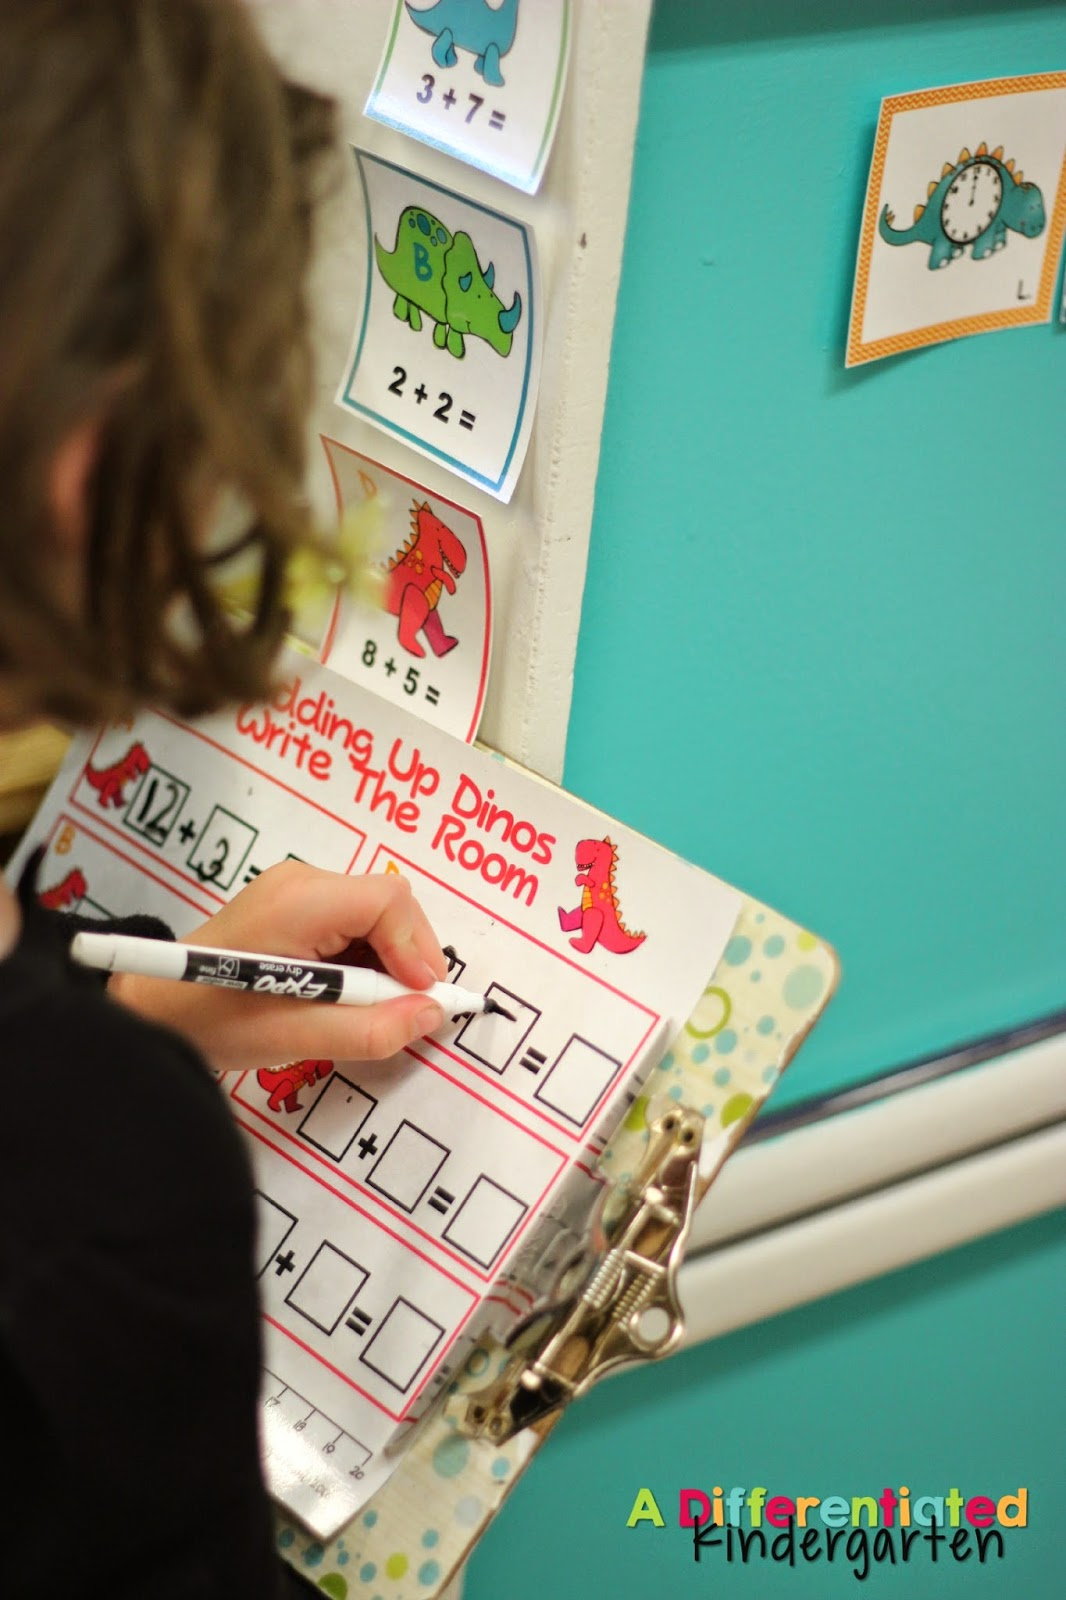 This blog post has daily schedules for a kindergarten classroom including Math Stations